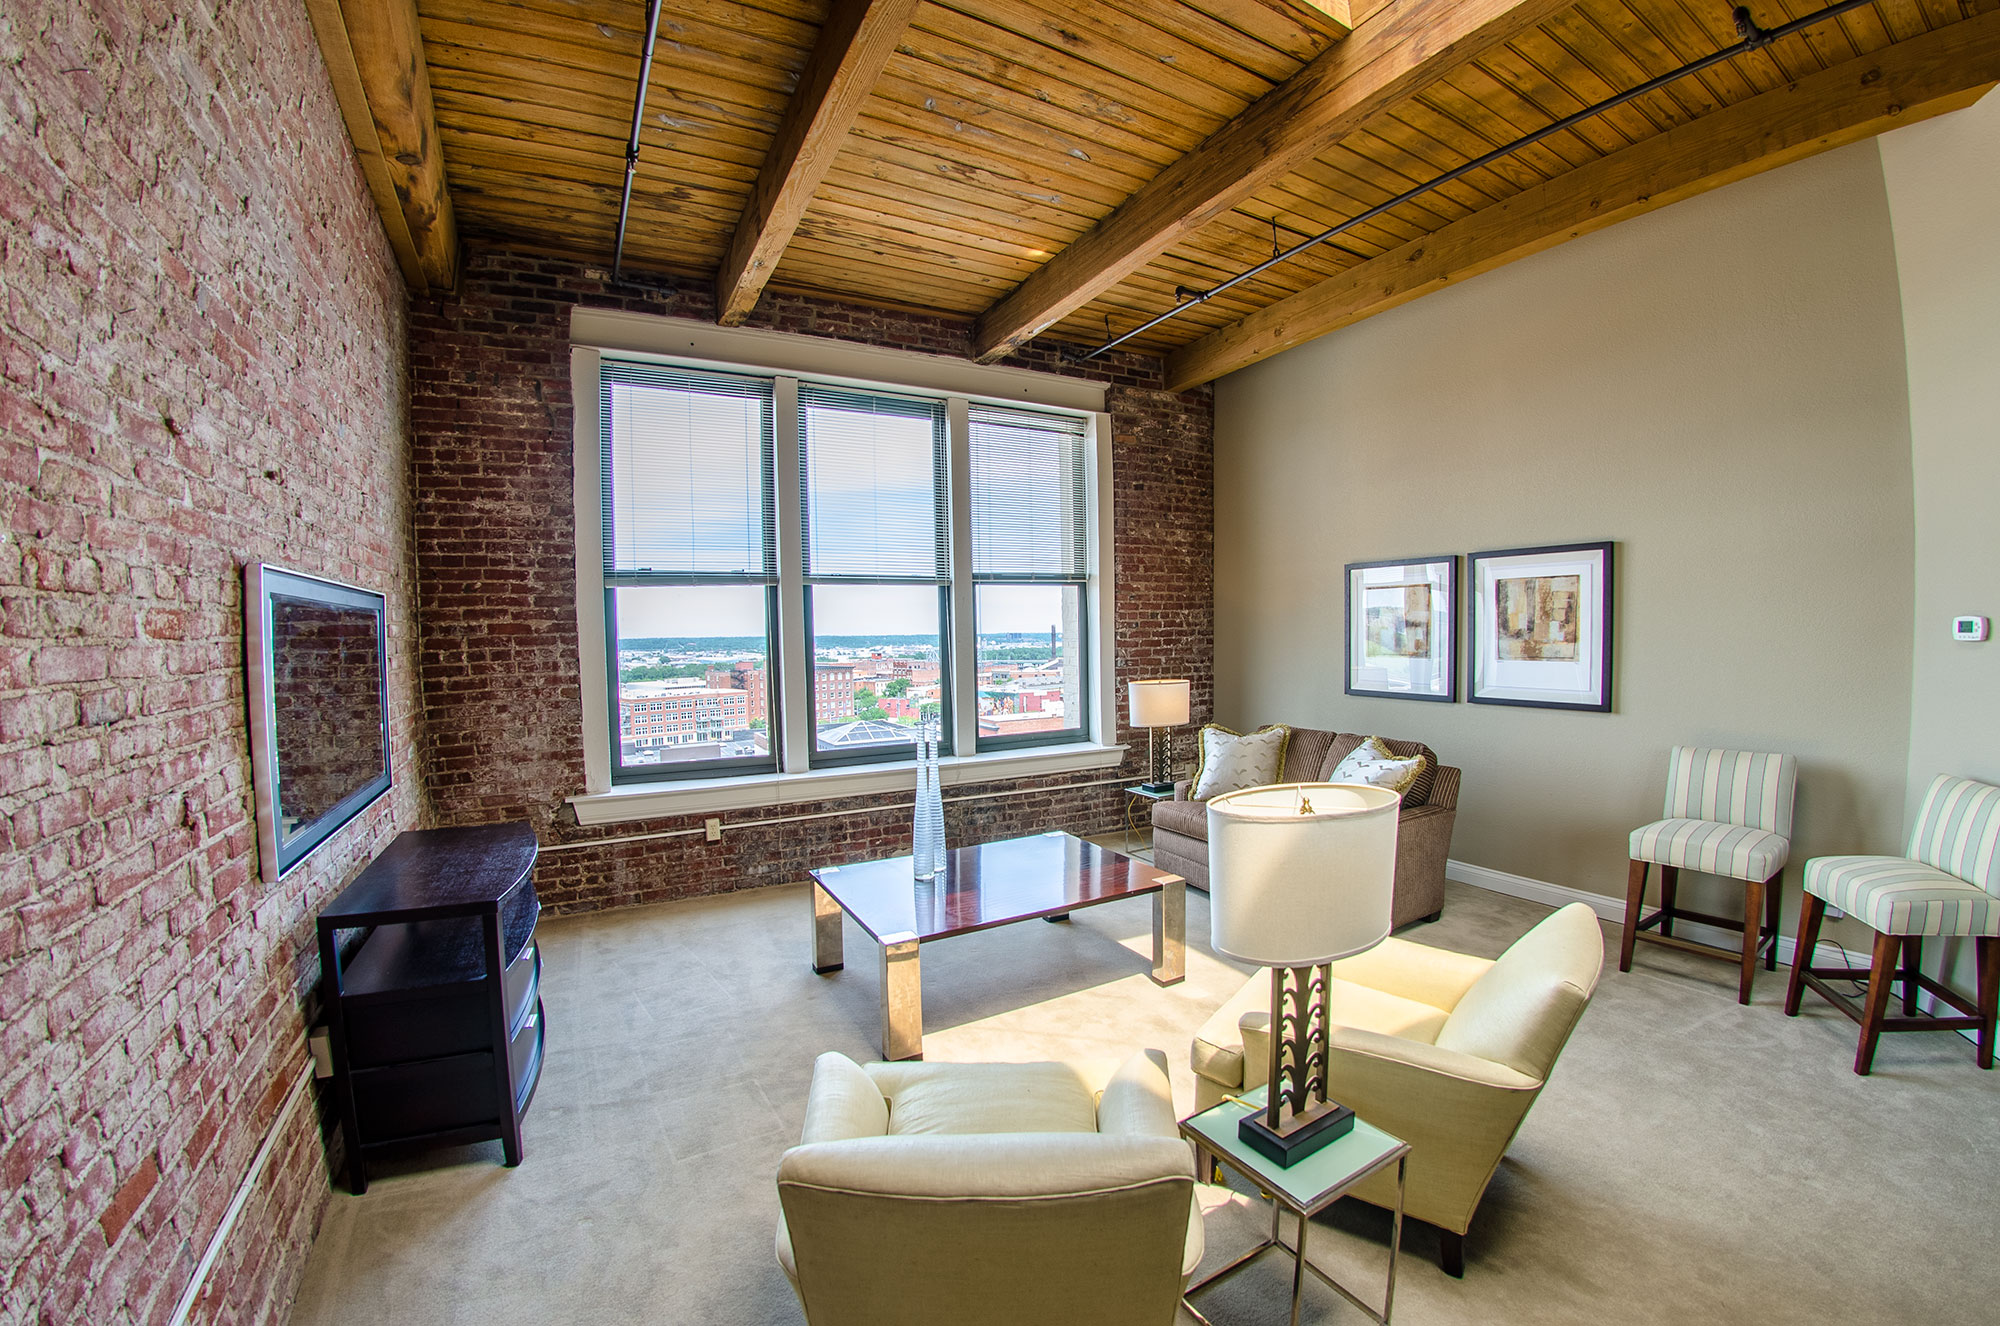 Featured for sale soho lofts 720 kansas city lofts for Nyc loft for sale